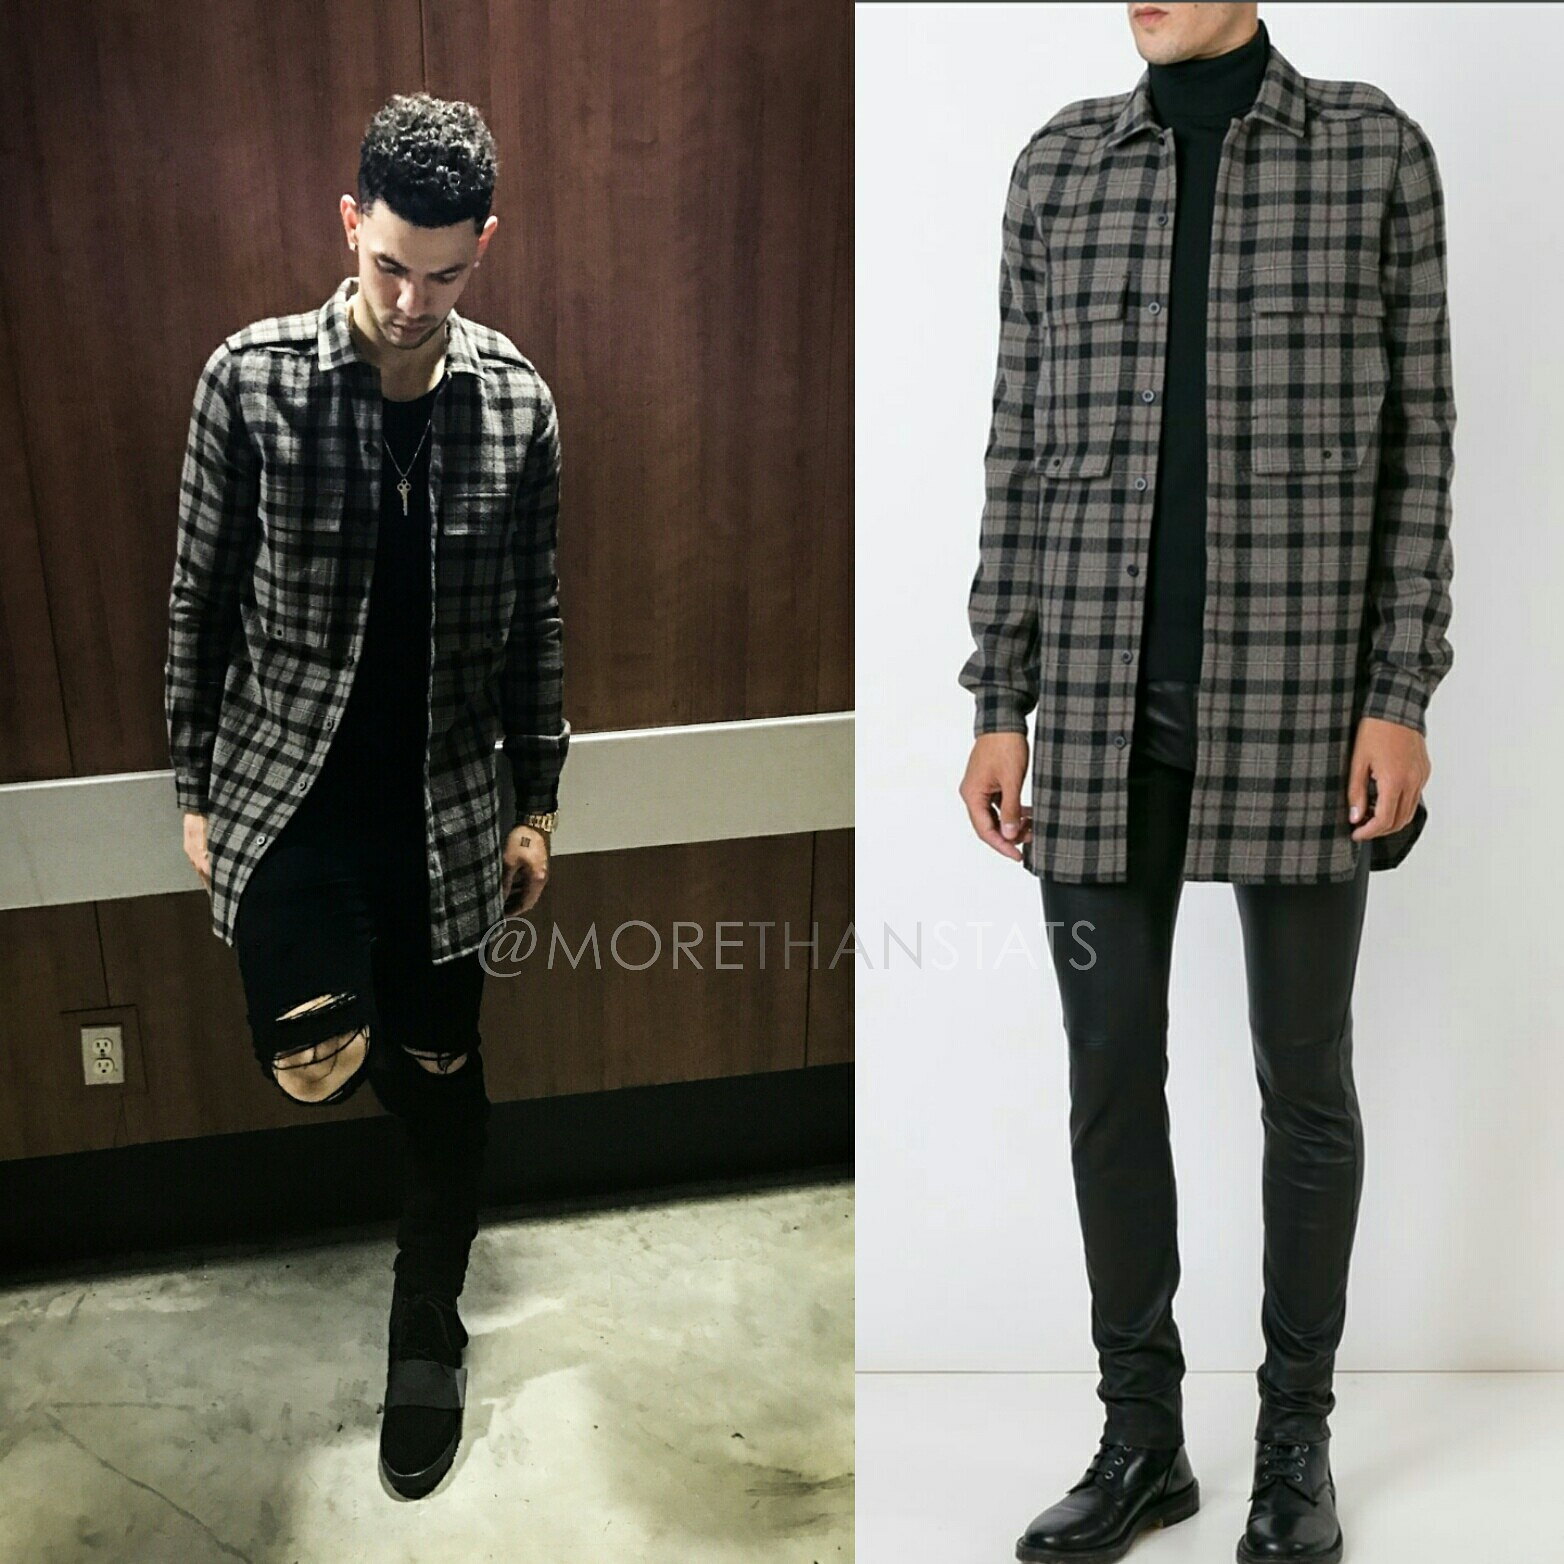 L.A. Clippers Austin Rivers Wears Rick Owens plaid Flannel, Amiri Jeans, & Yeezy Boost 750 Sneakers